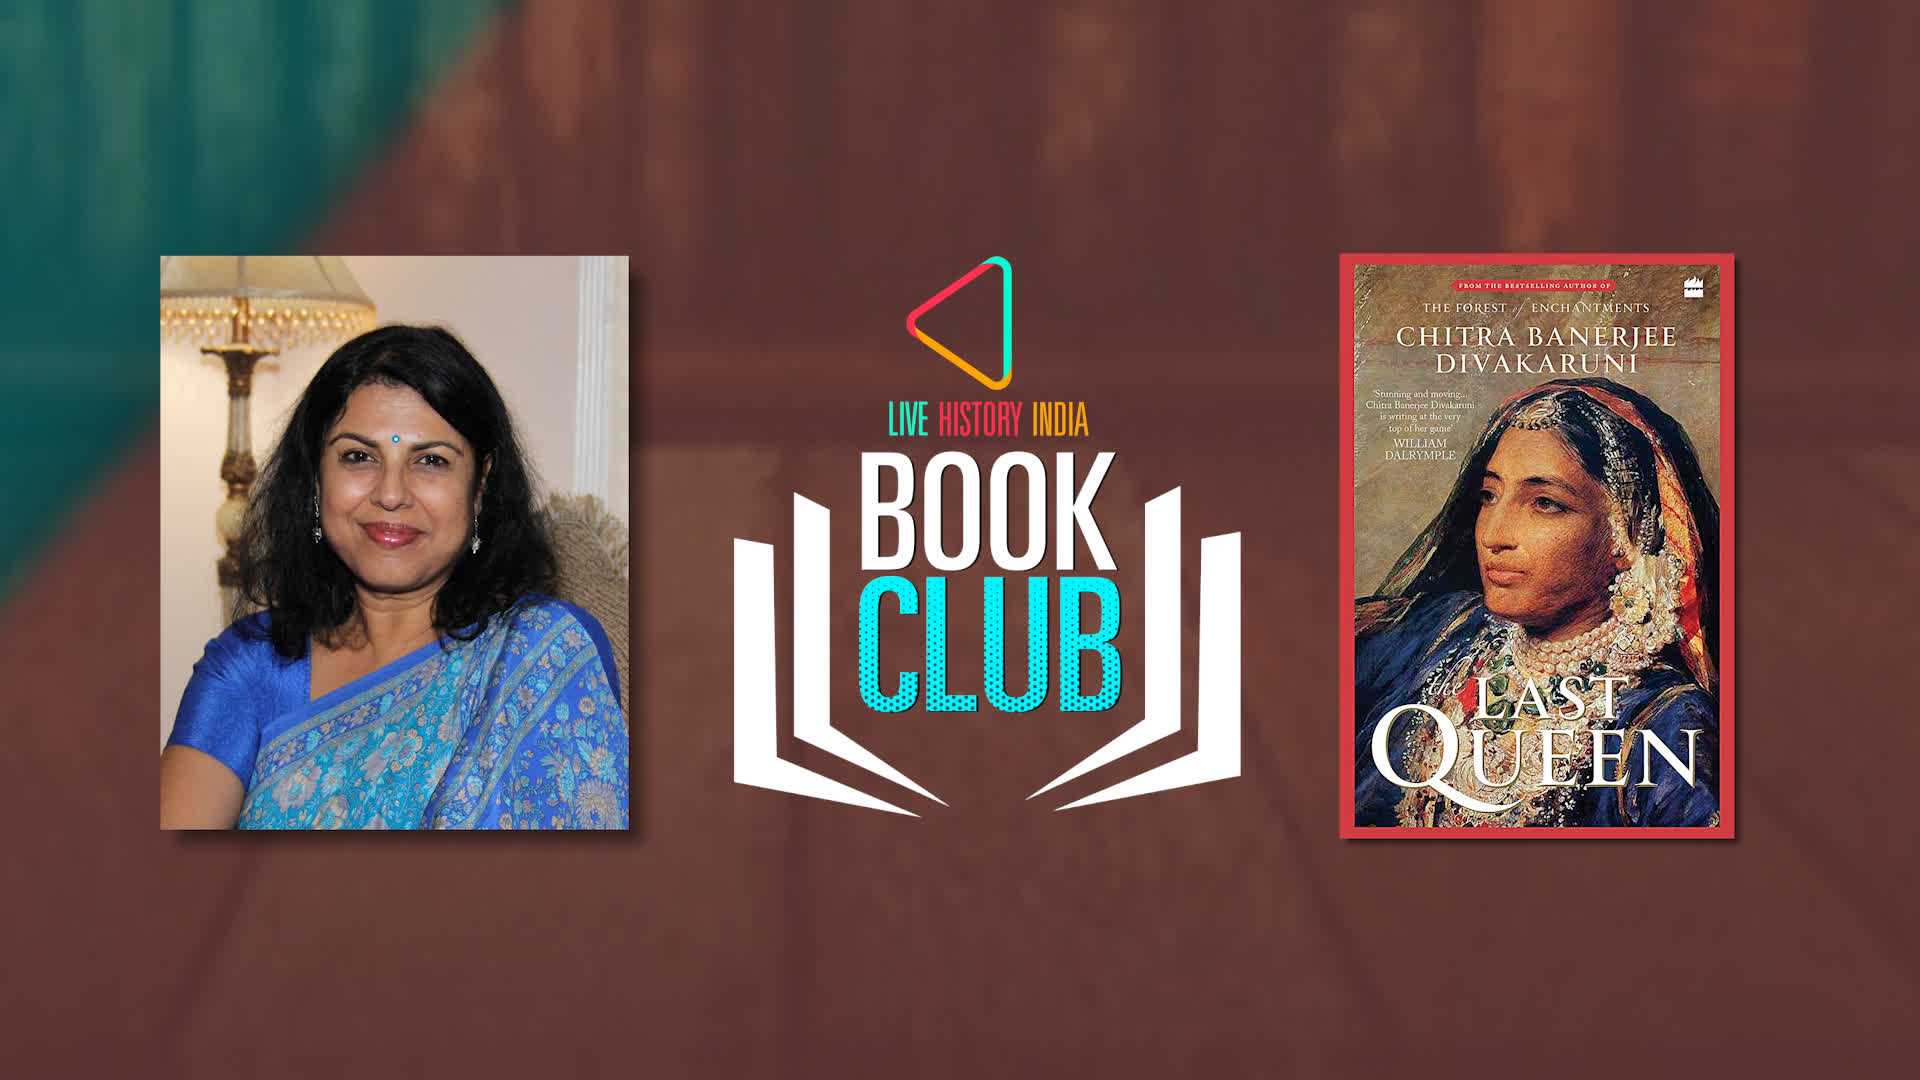 Chitra Banerjee Divakaruni on The Last Queen